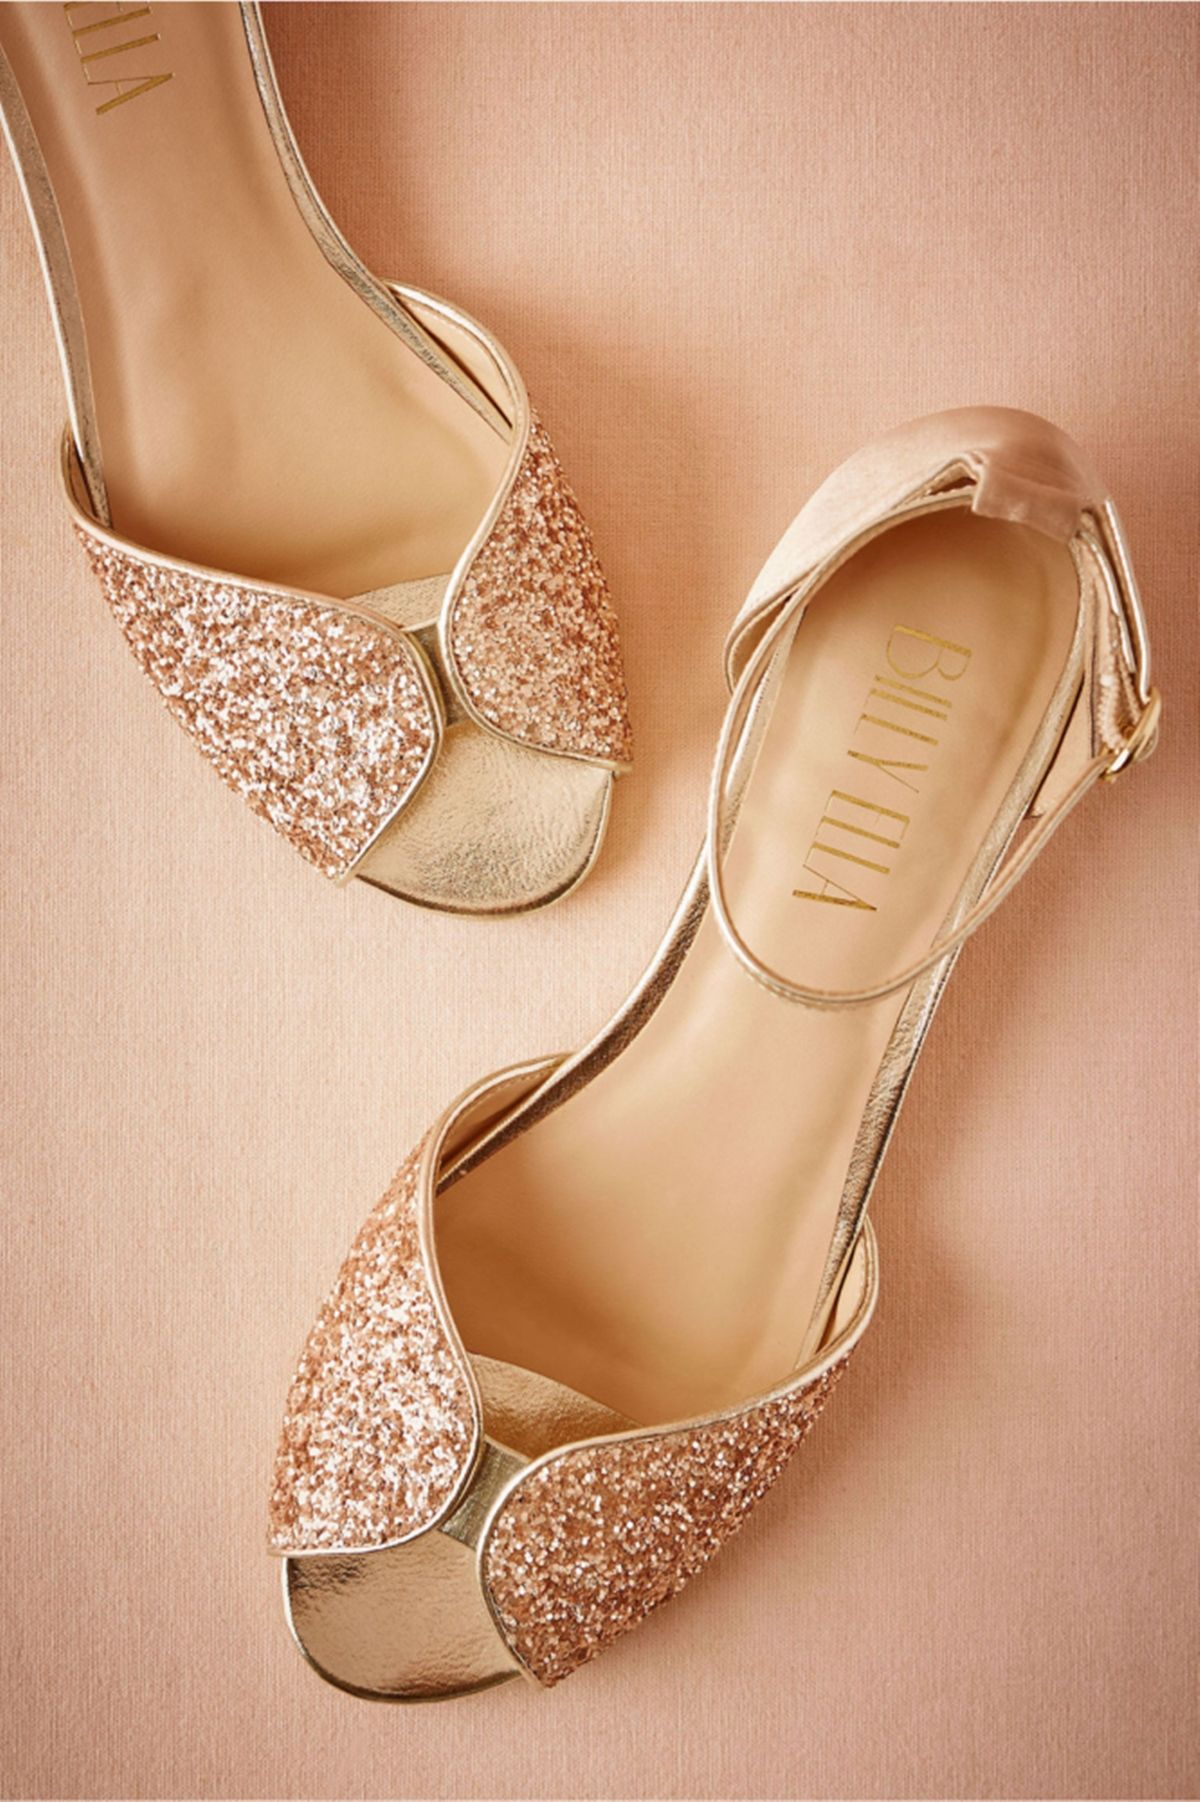 Gold dress shoes for wedding  Ideas for flat bridal shoes  Flat bridal shoes Bridal shoe and